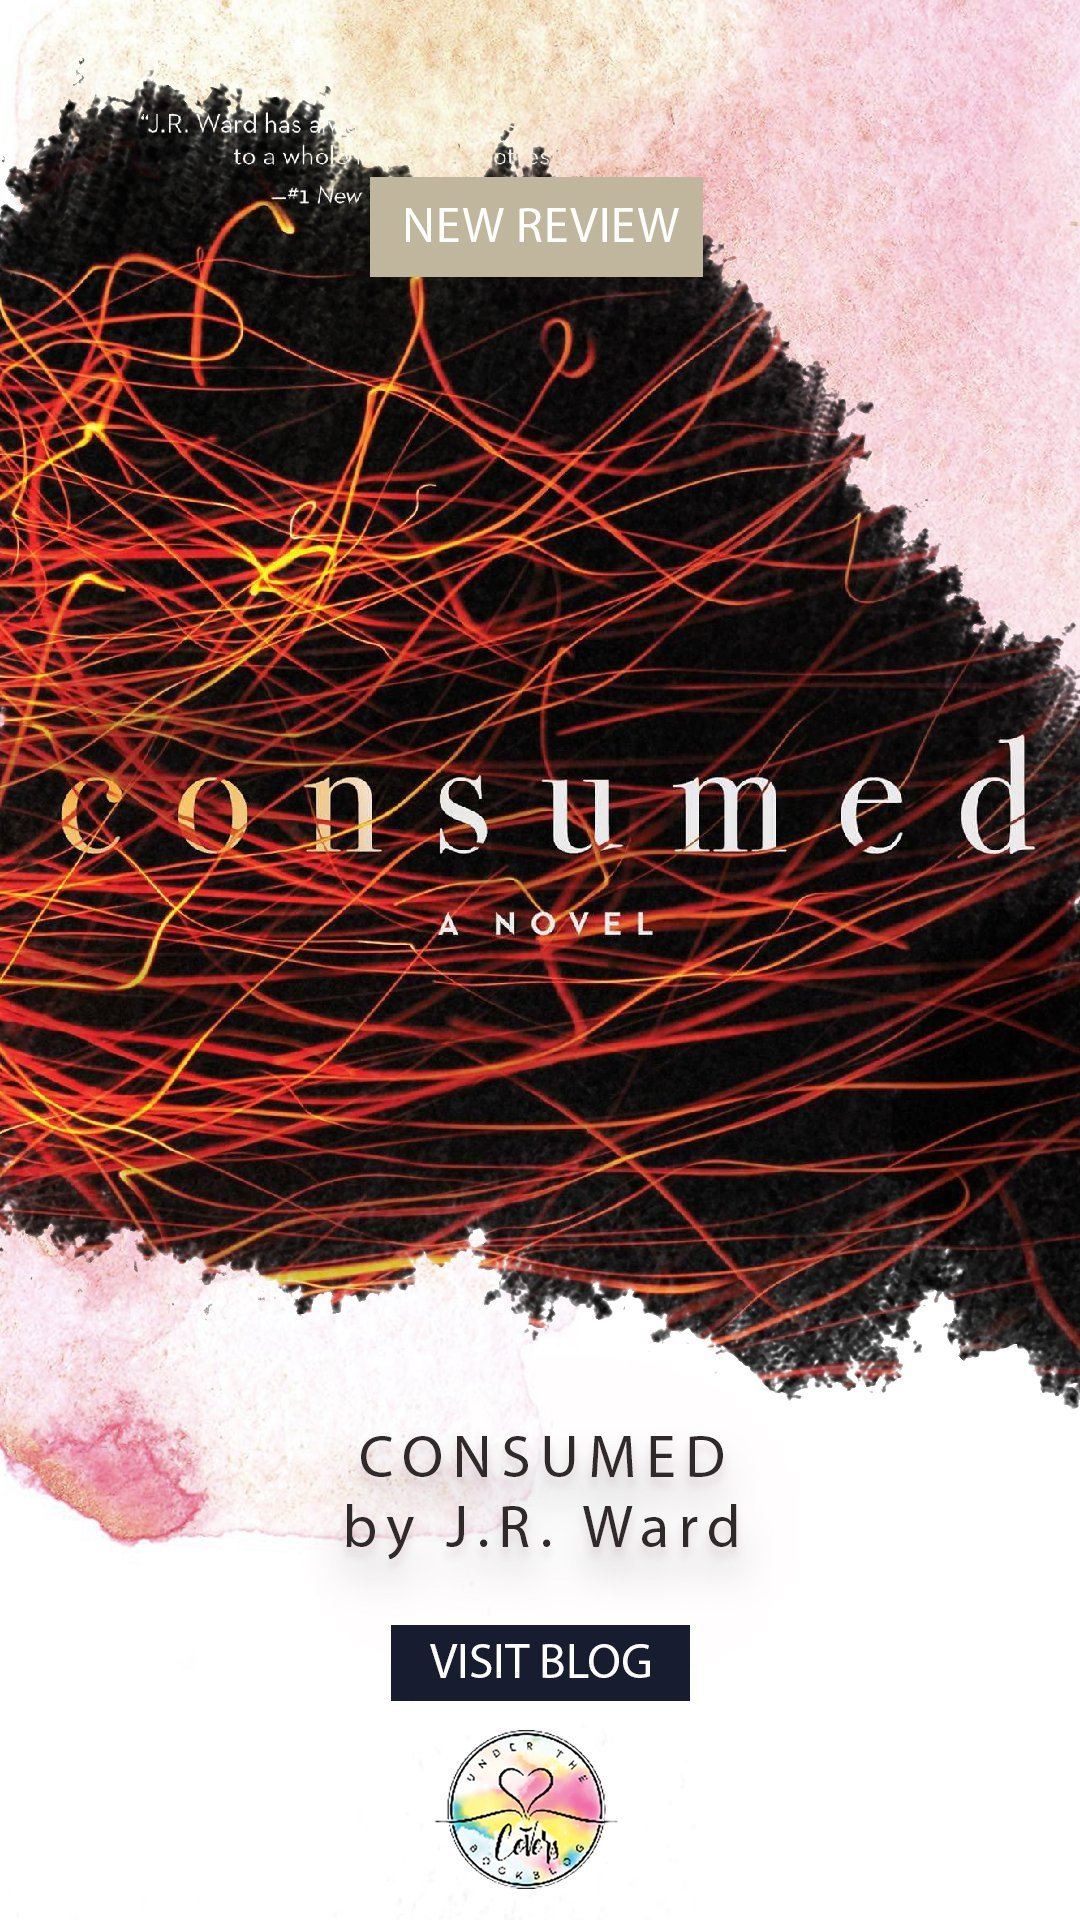 ARC Review: Consumed by J.R. Ward